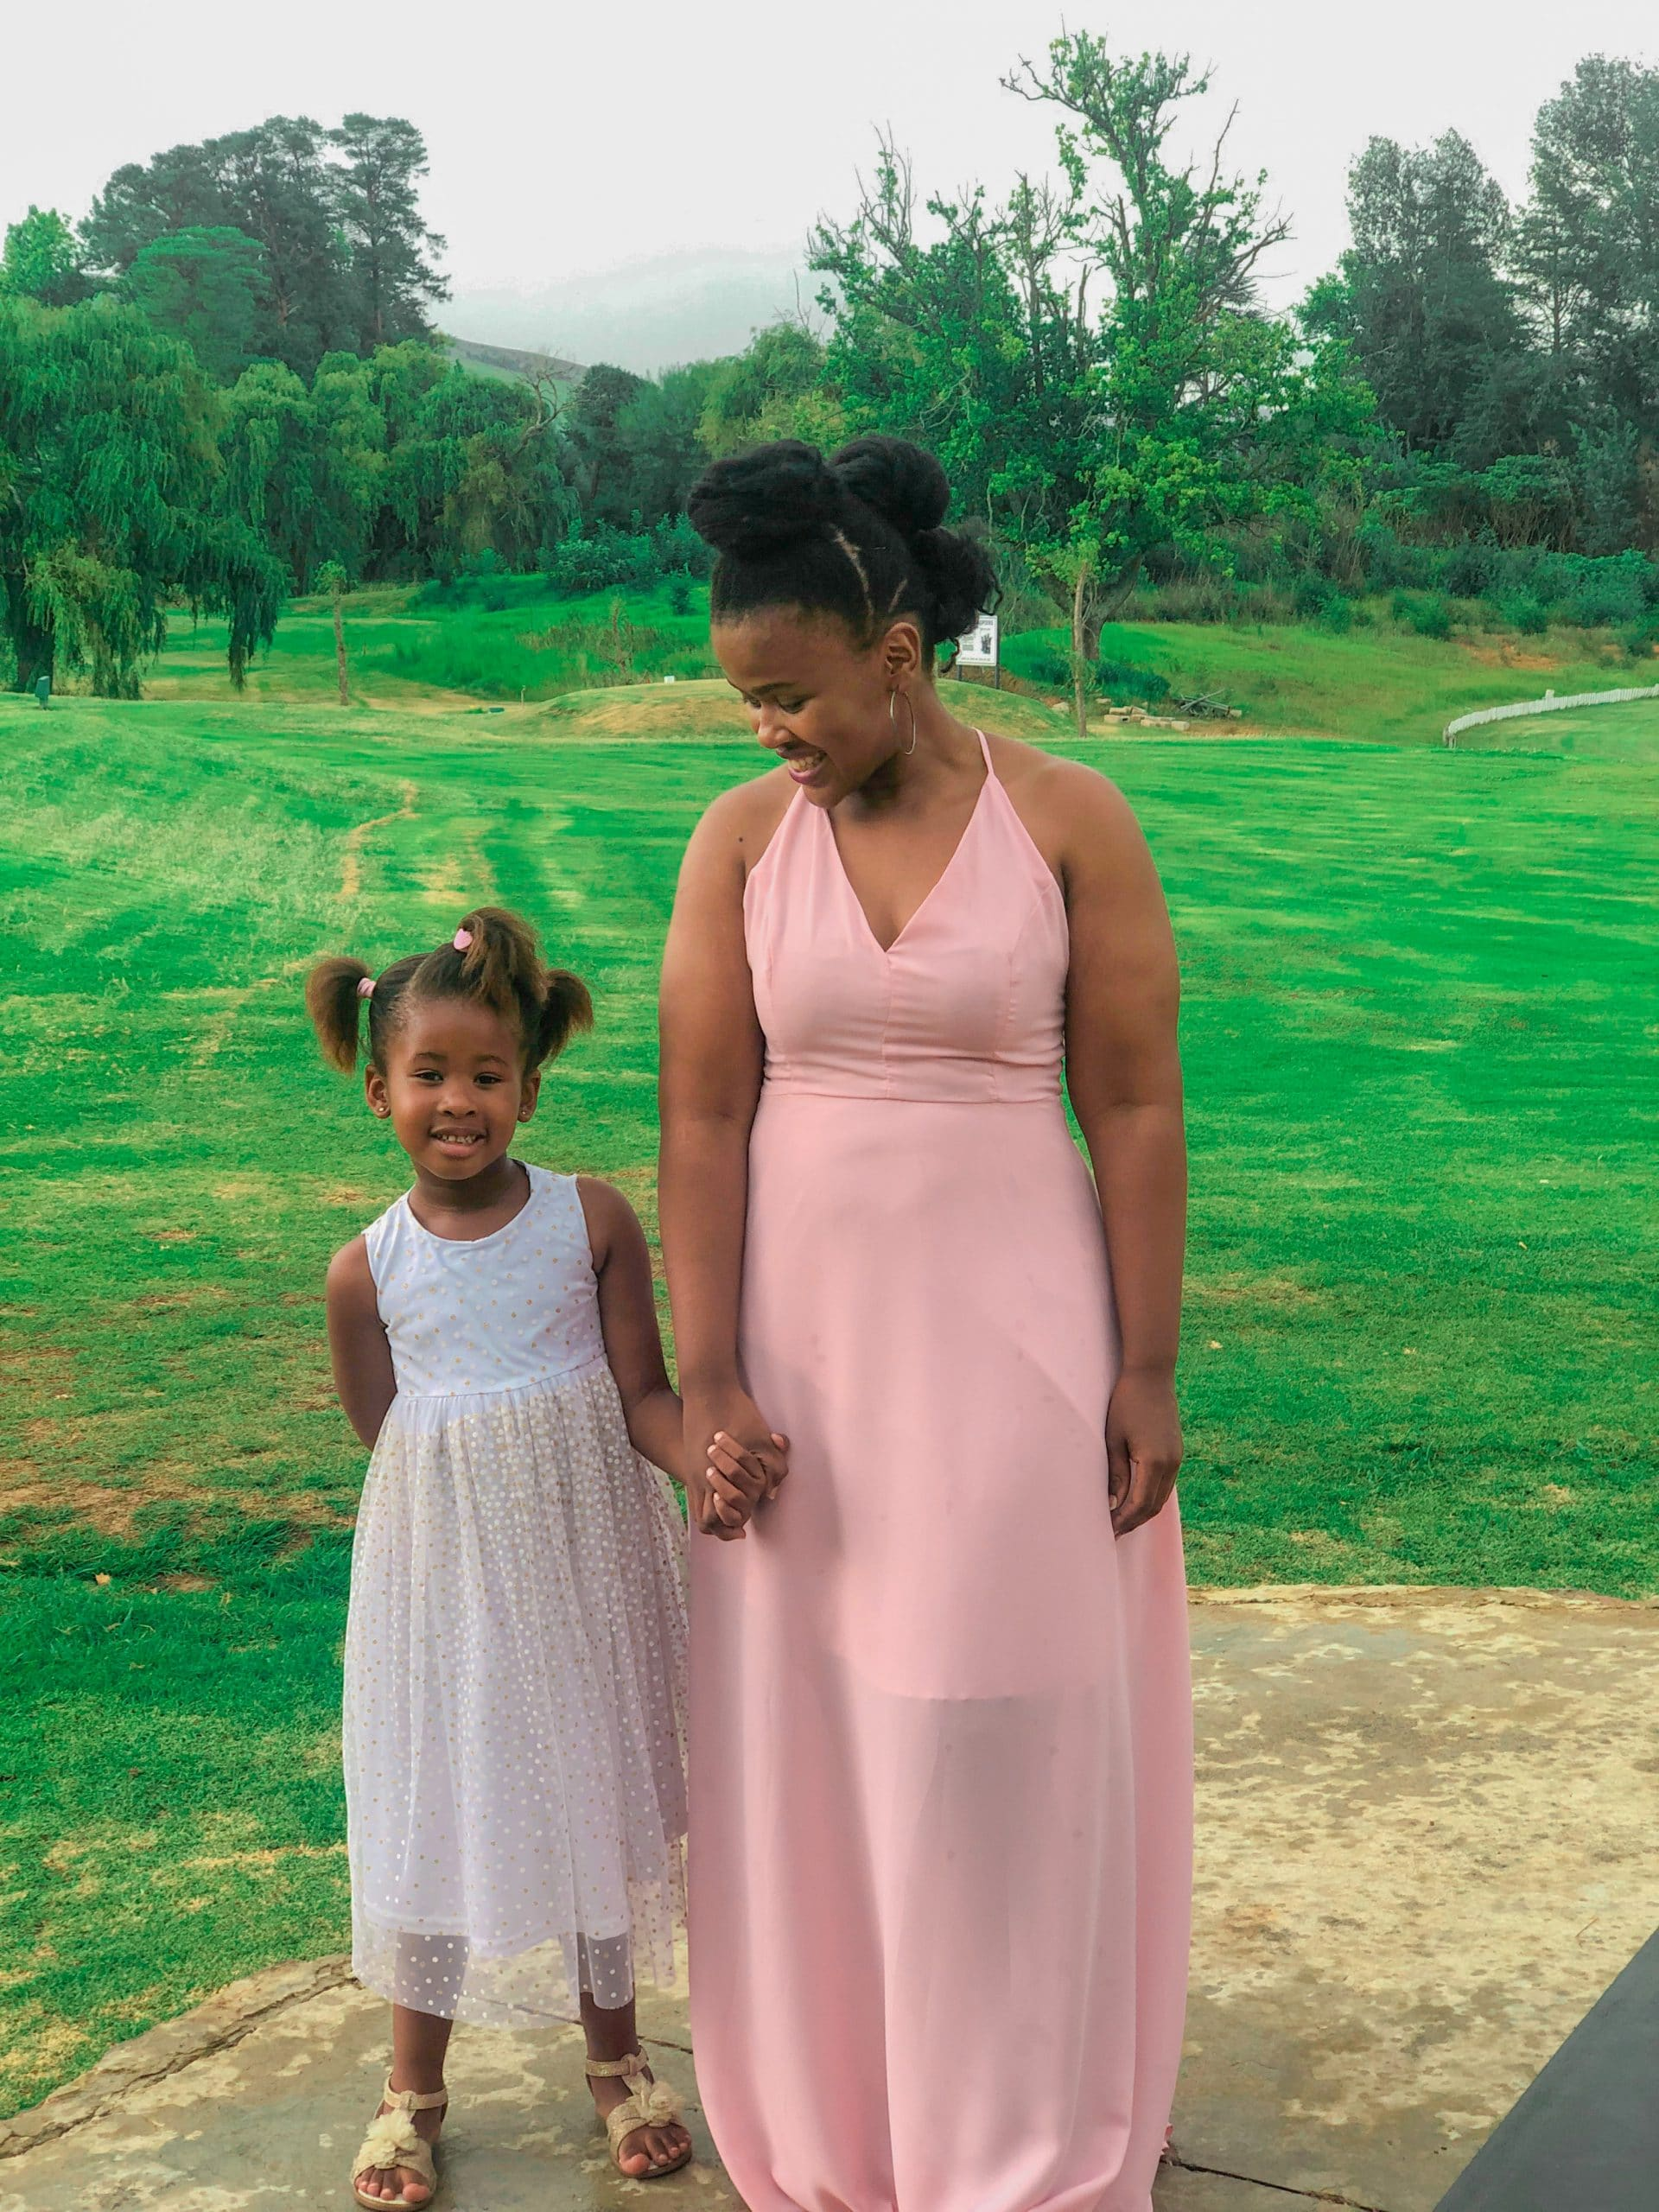 Healing the mother wound,5 tips to get started with self-care as a mom